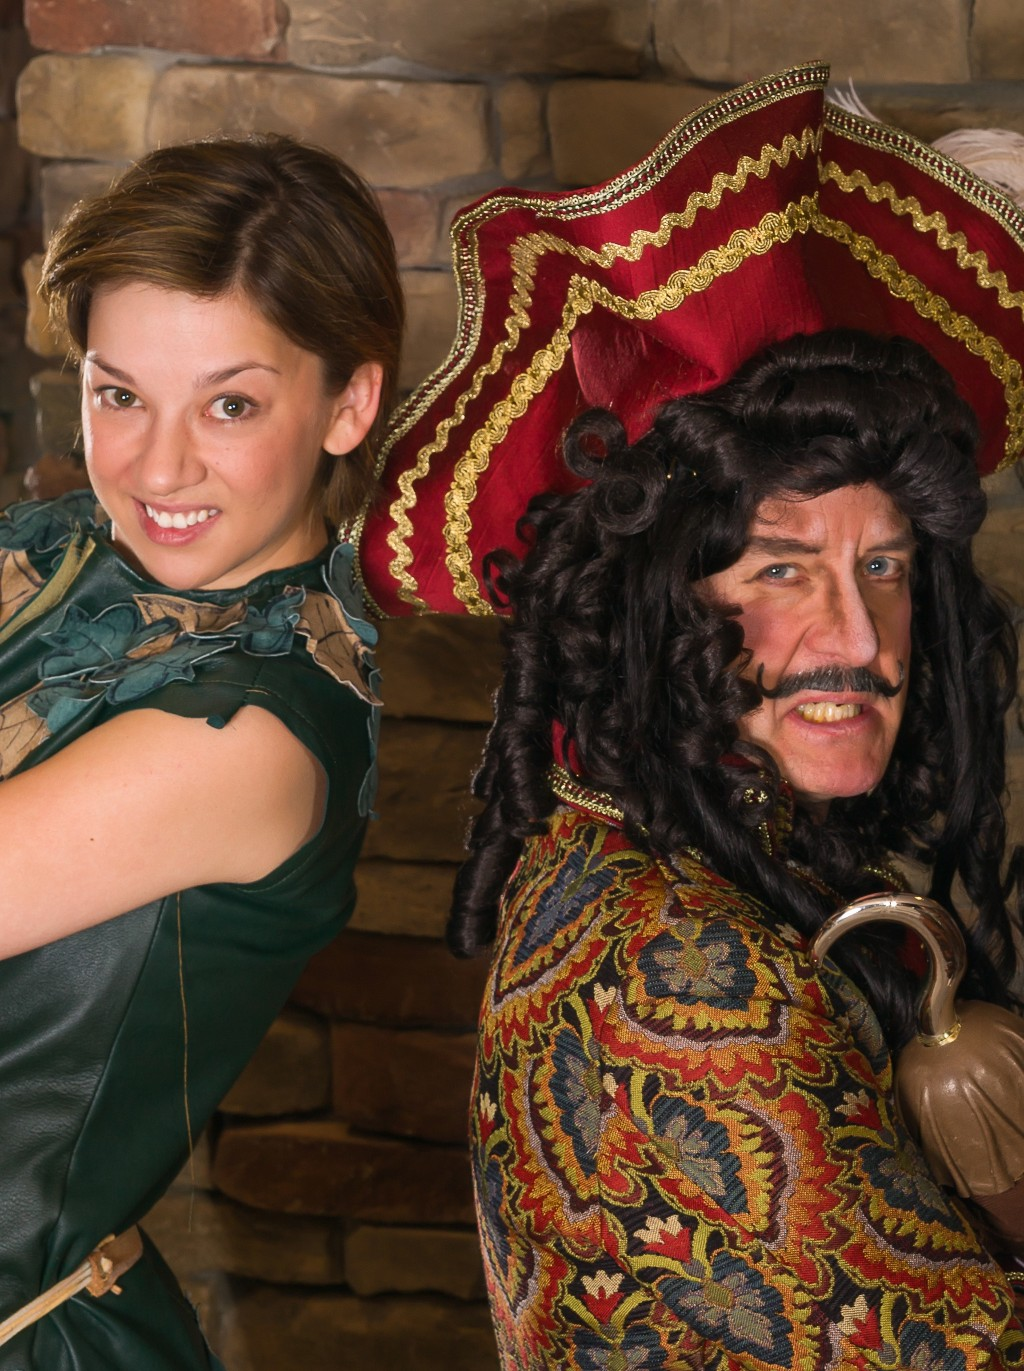 Colorado Dinner Theater: Peter Pan flies into Candlelight